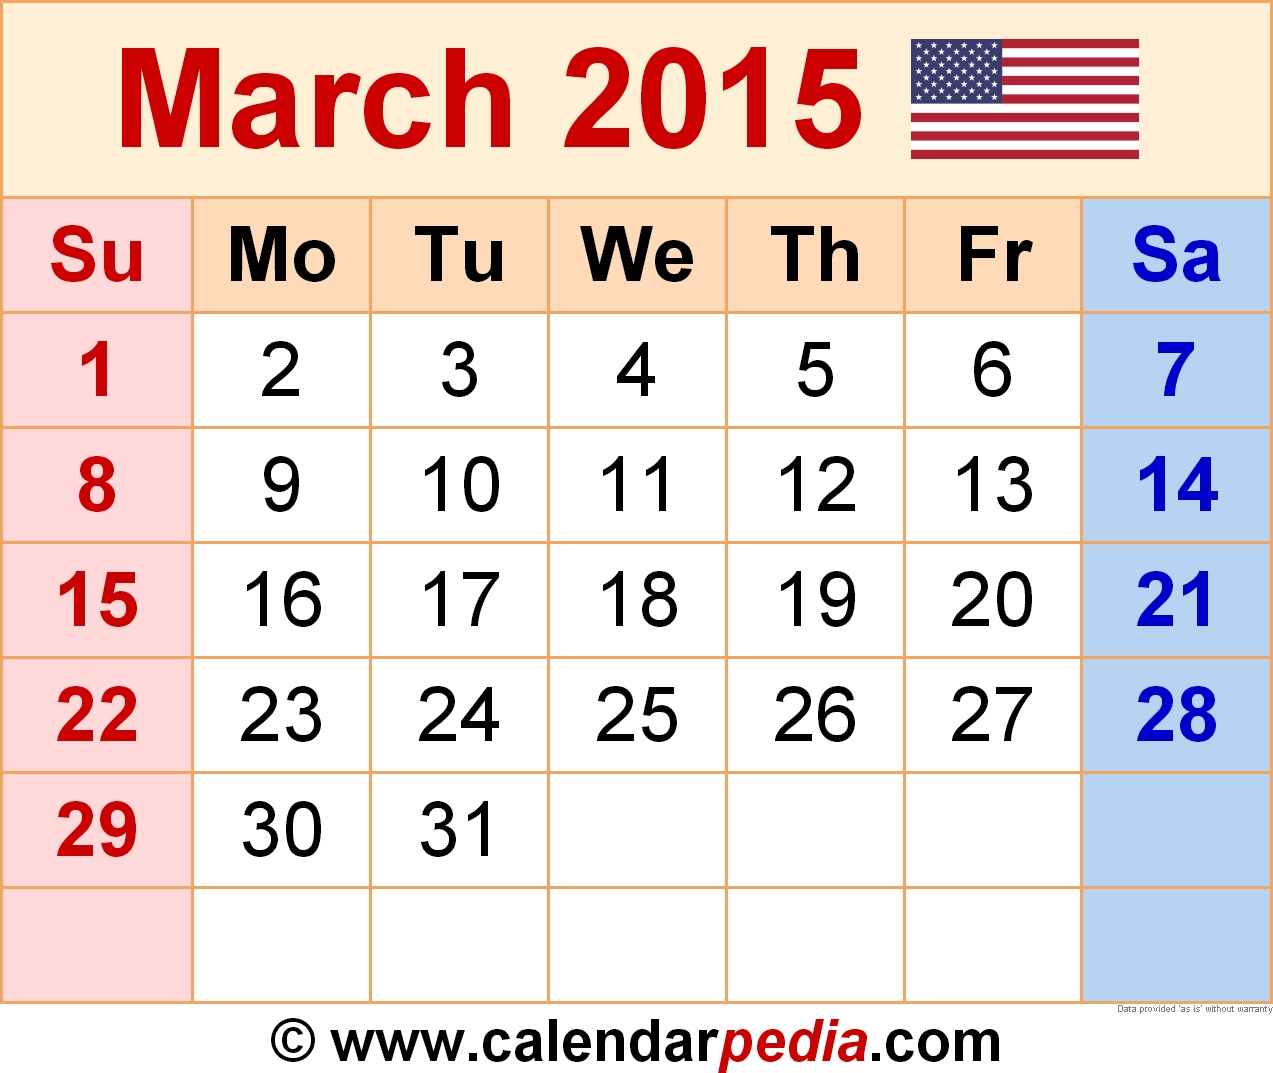 March 2015 Calendar - Free Templates For Word, Excel & Pdf